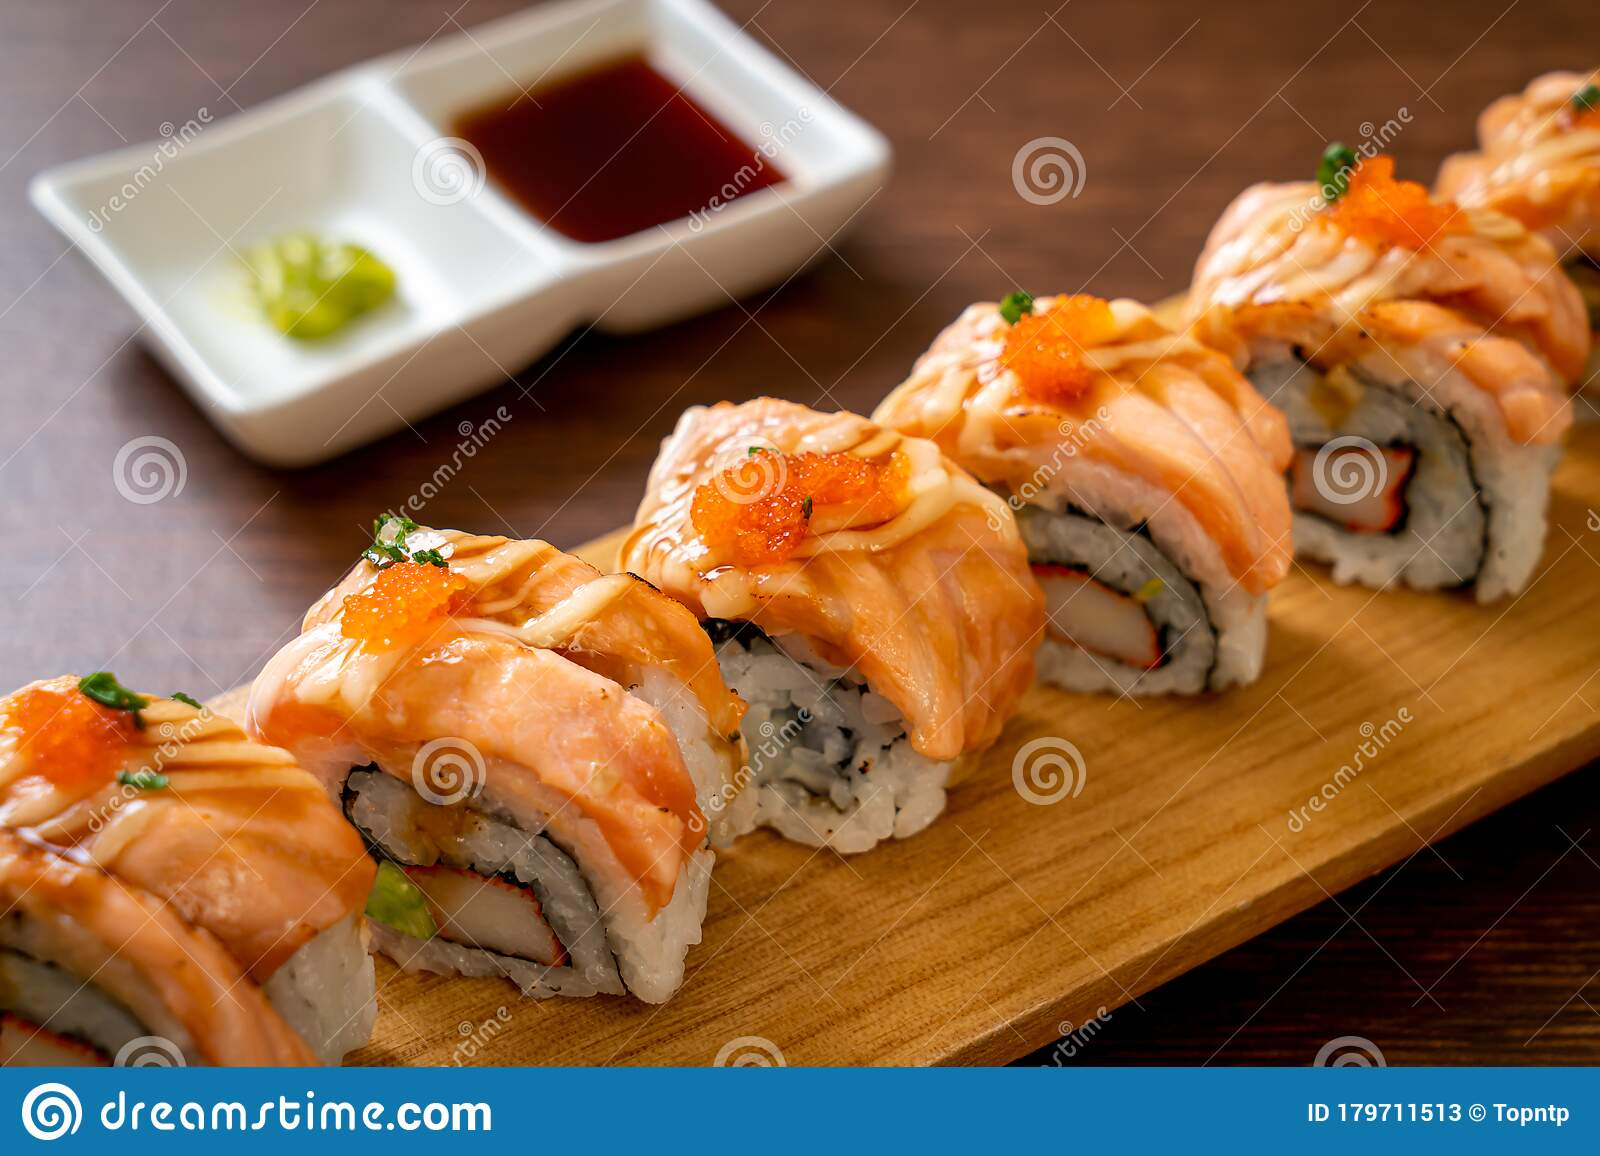 Grilled Salmon Sushi Roll With Sauce Stock Image Image Of Health Orange 179711513